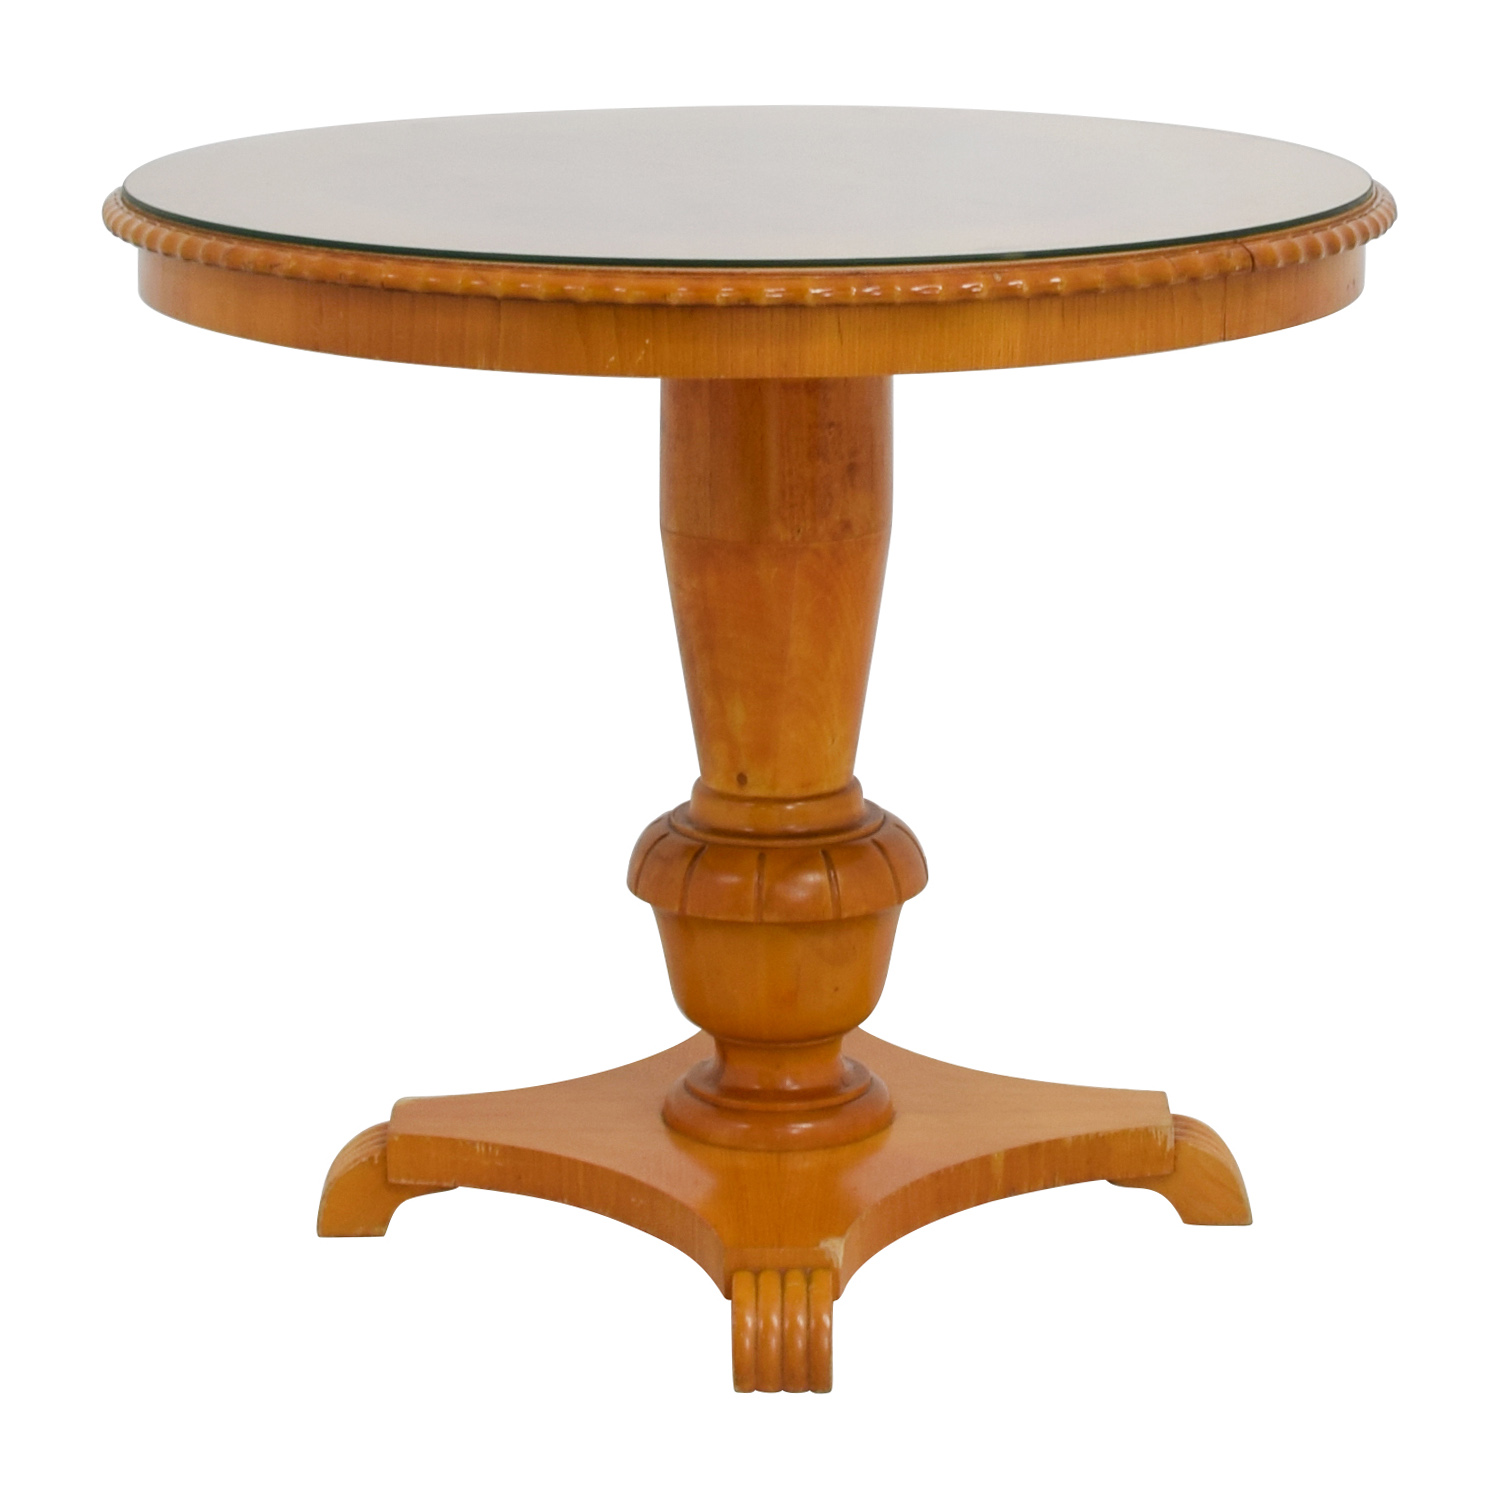 Antique round wood dining table with glass top second hand for Small round wood kitchen table